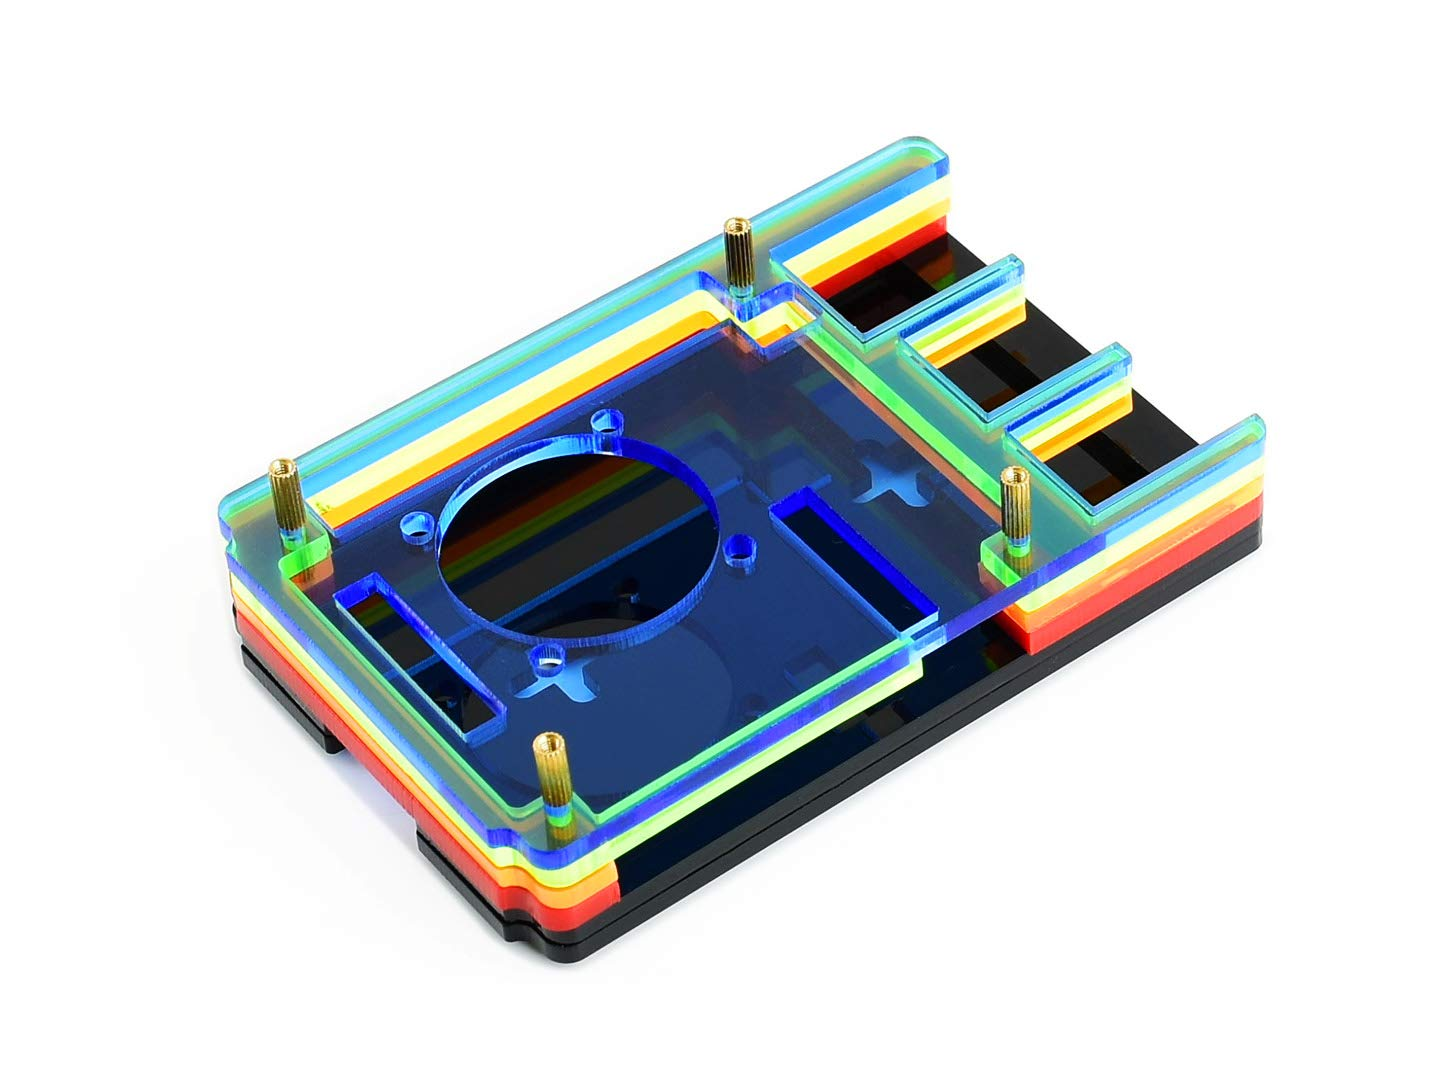 Waveshare Black White Acrylic Case for Raspberry Pi 4 Model B with Cooling Fan Dust Resistance Heat Spreading Easily Connecting Peripherals Camera